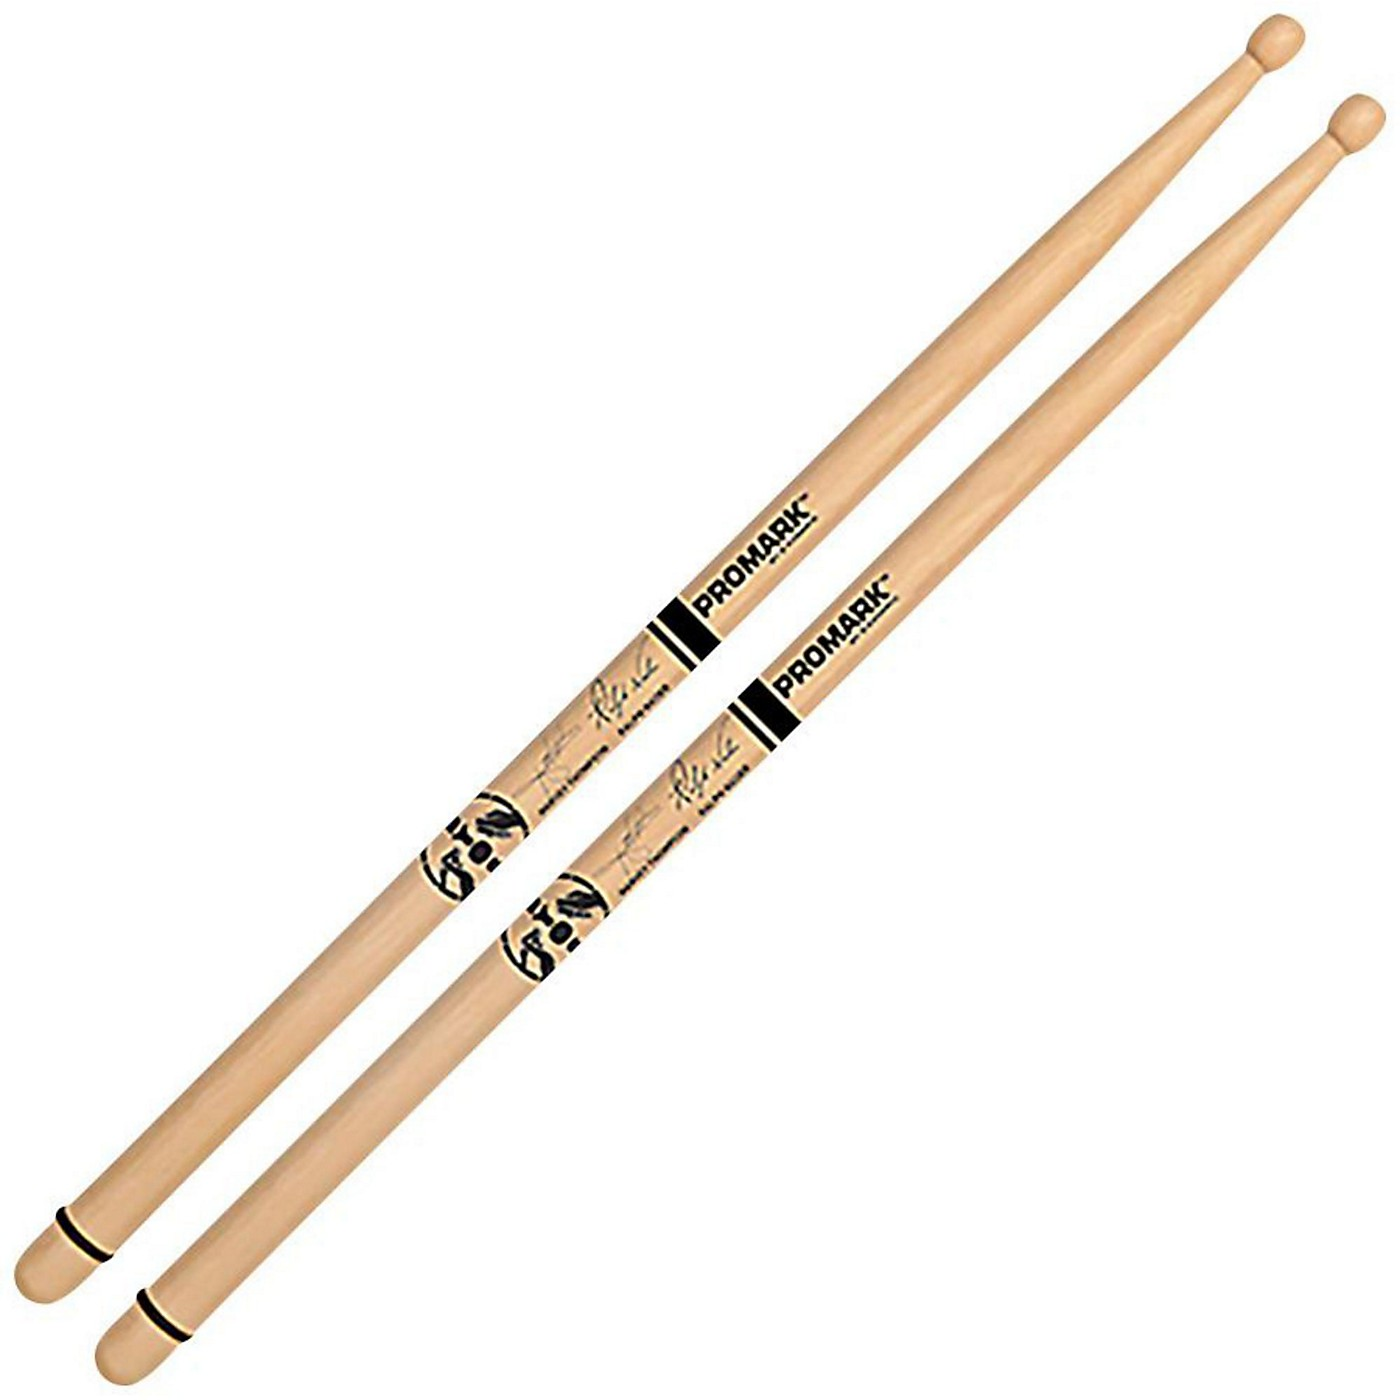 Promark BYOS Hickory Oval Wood Tip Drumsticks thumbnail